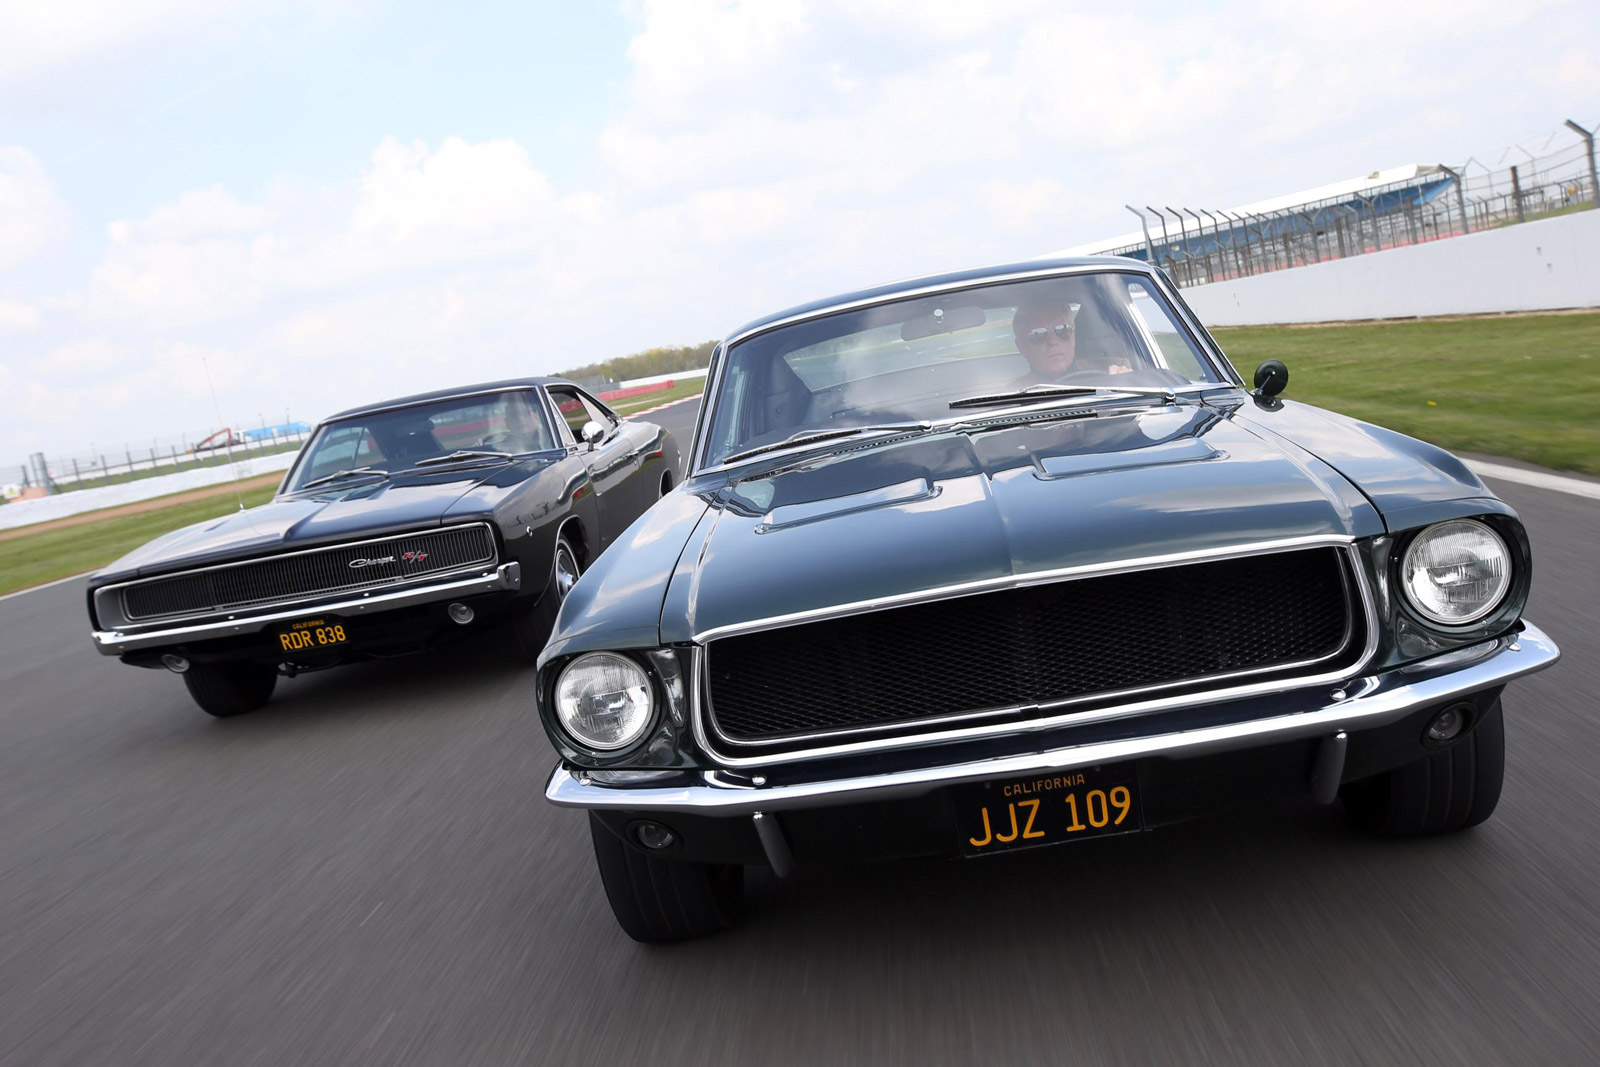 Fans Recreate Bullitt Chase Scene In Silverstone Video